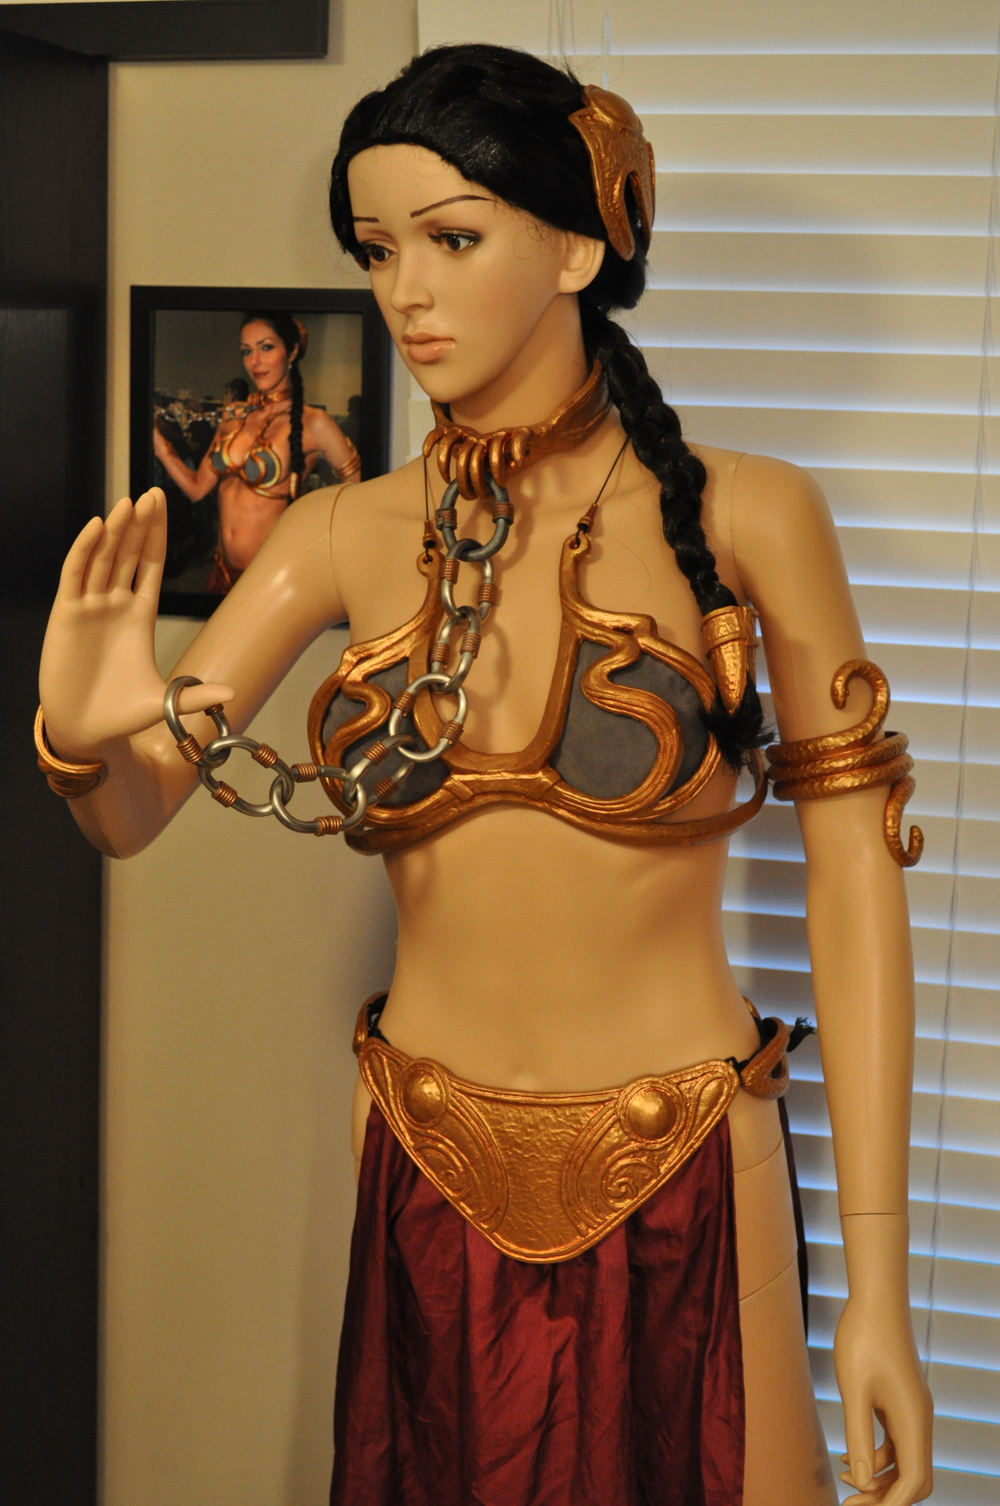 Adrianne Curry's custom Slave Leia Bikini on display in the Convention Room.